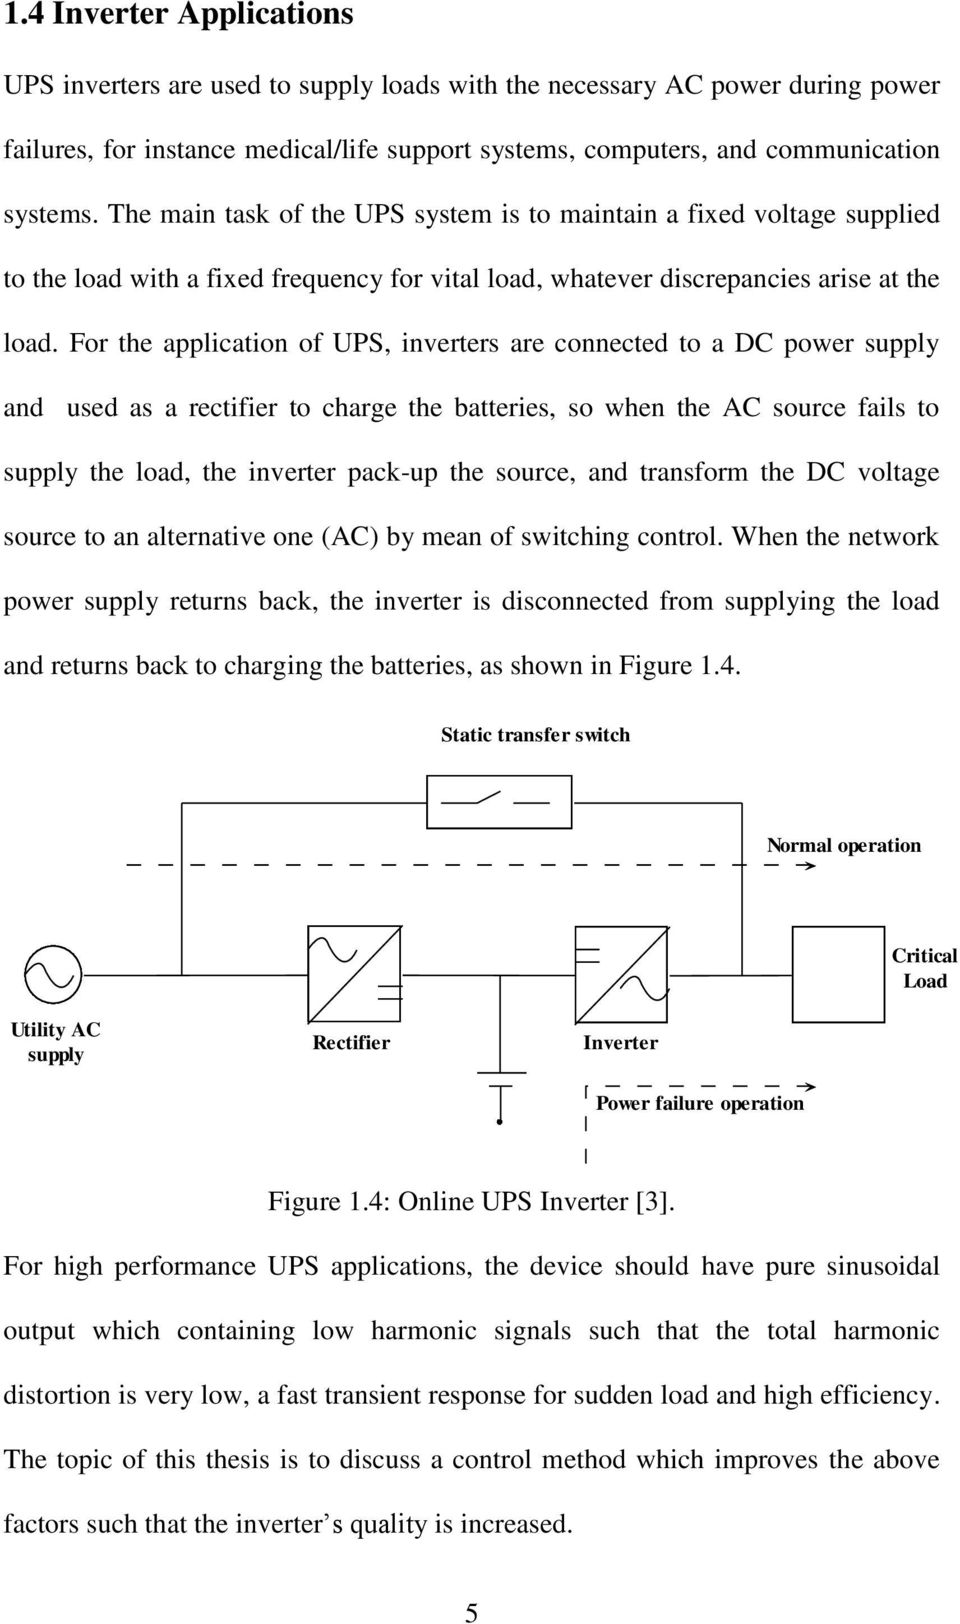 For the application of UPS, inverters are connected to a DC power supply and used as a rectifier to charge the batteries, so when the AC source fails to supply the load, the inverter pack-up the